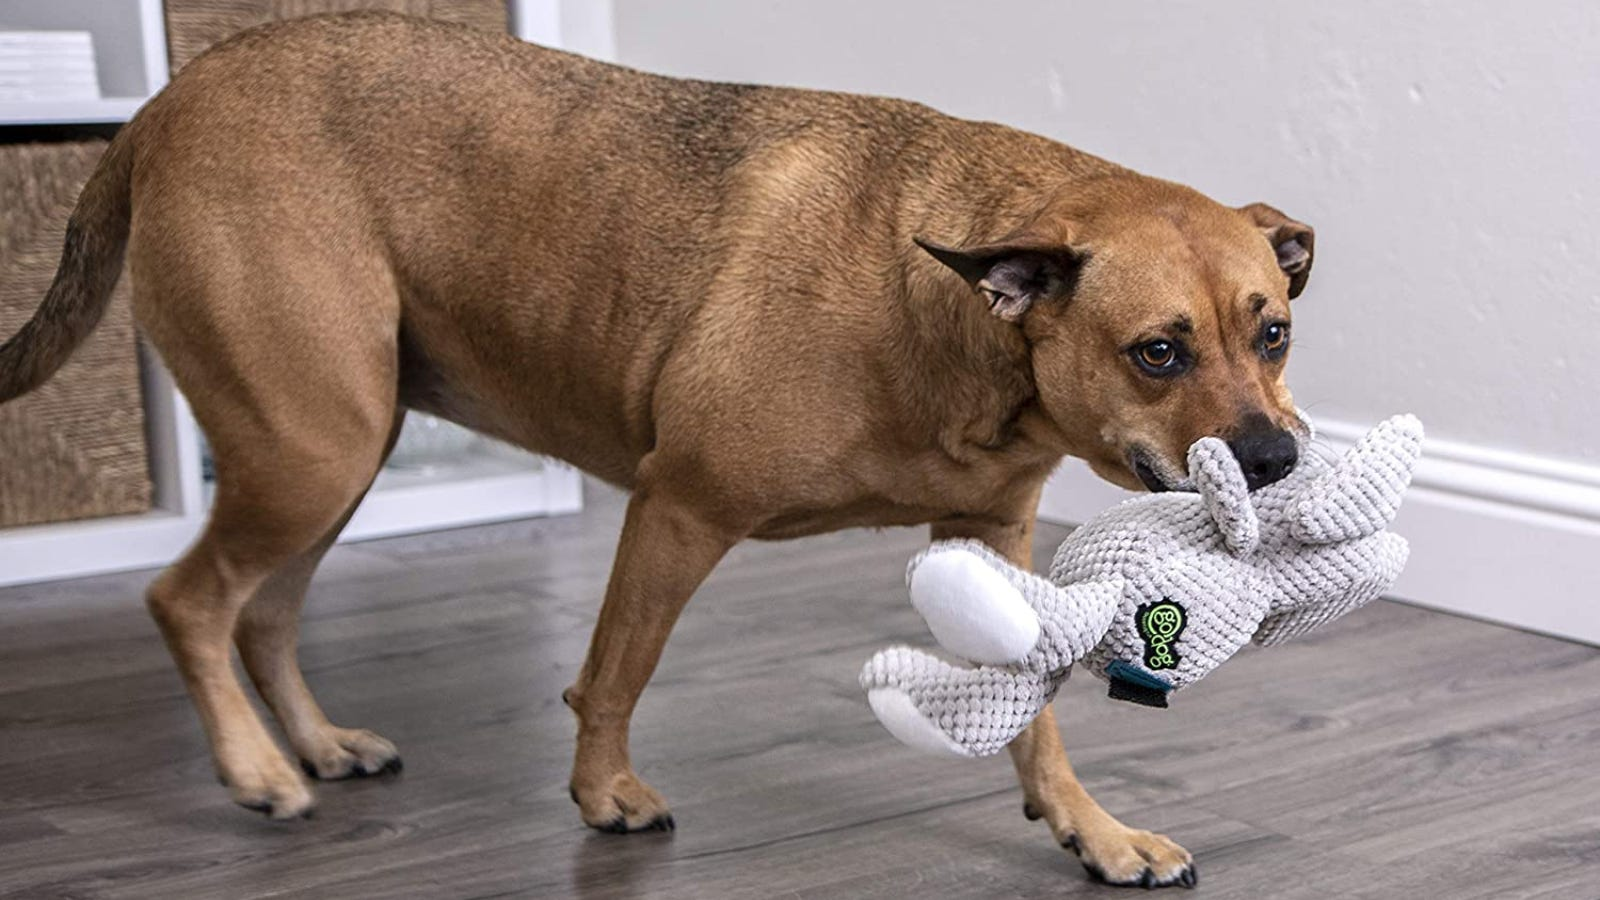 a brown dog holds a plush toy in its mouth